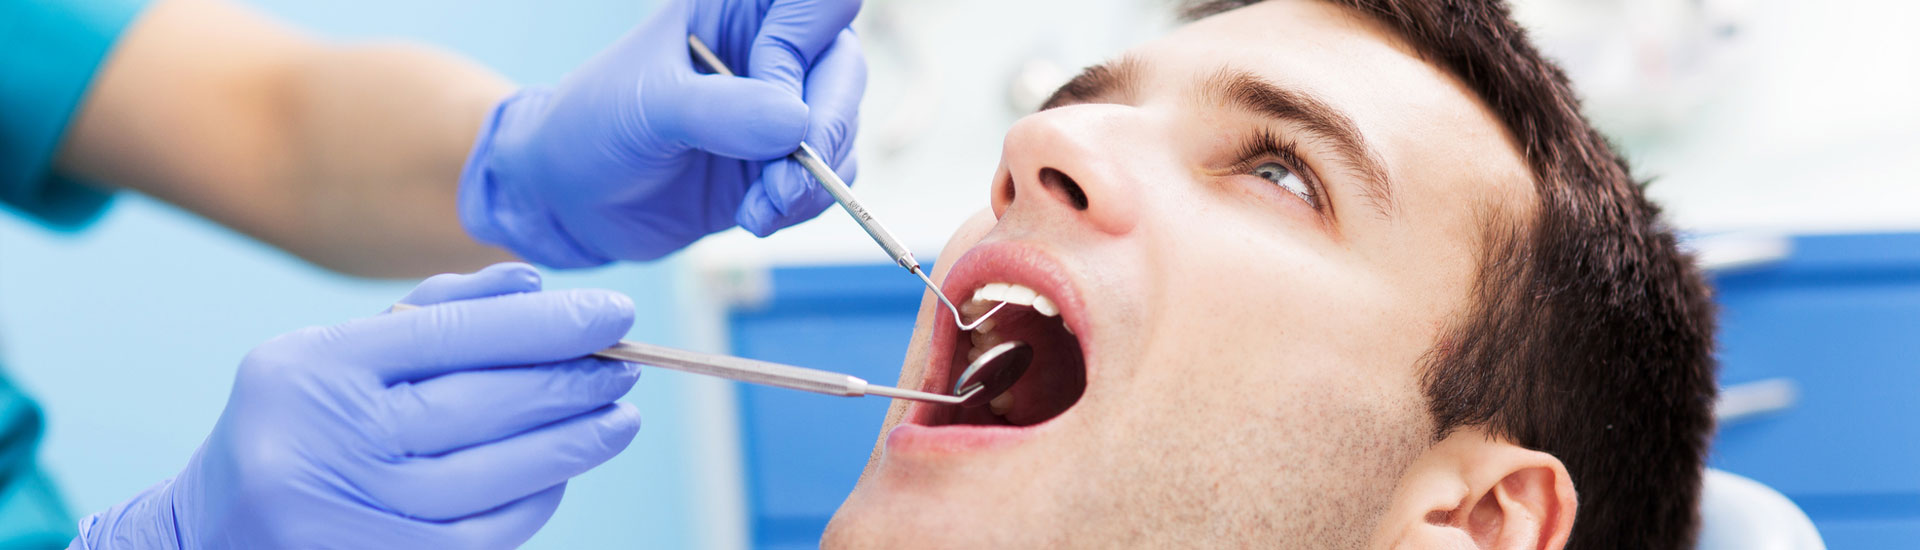 A man is having his teeth examined at dentists